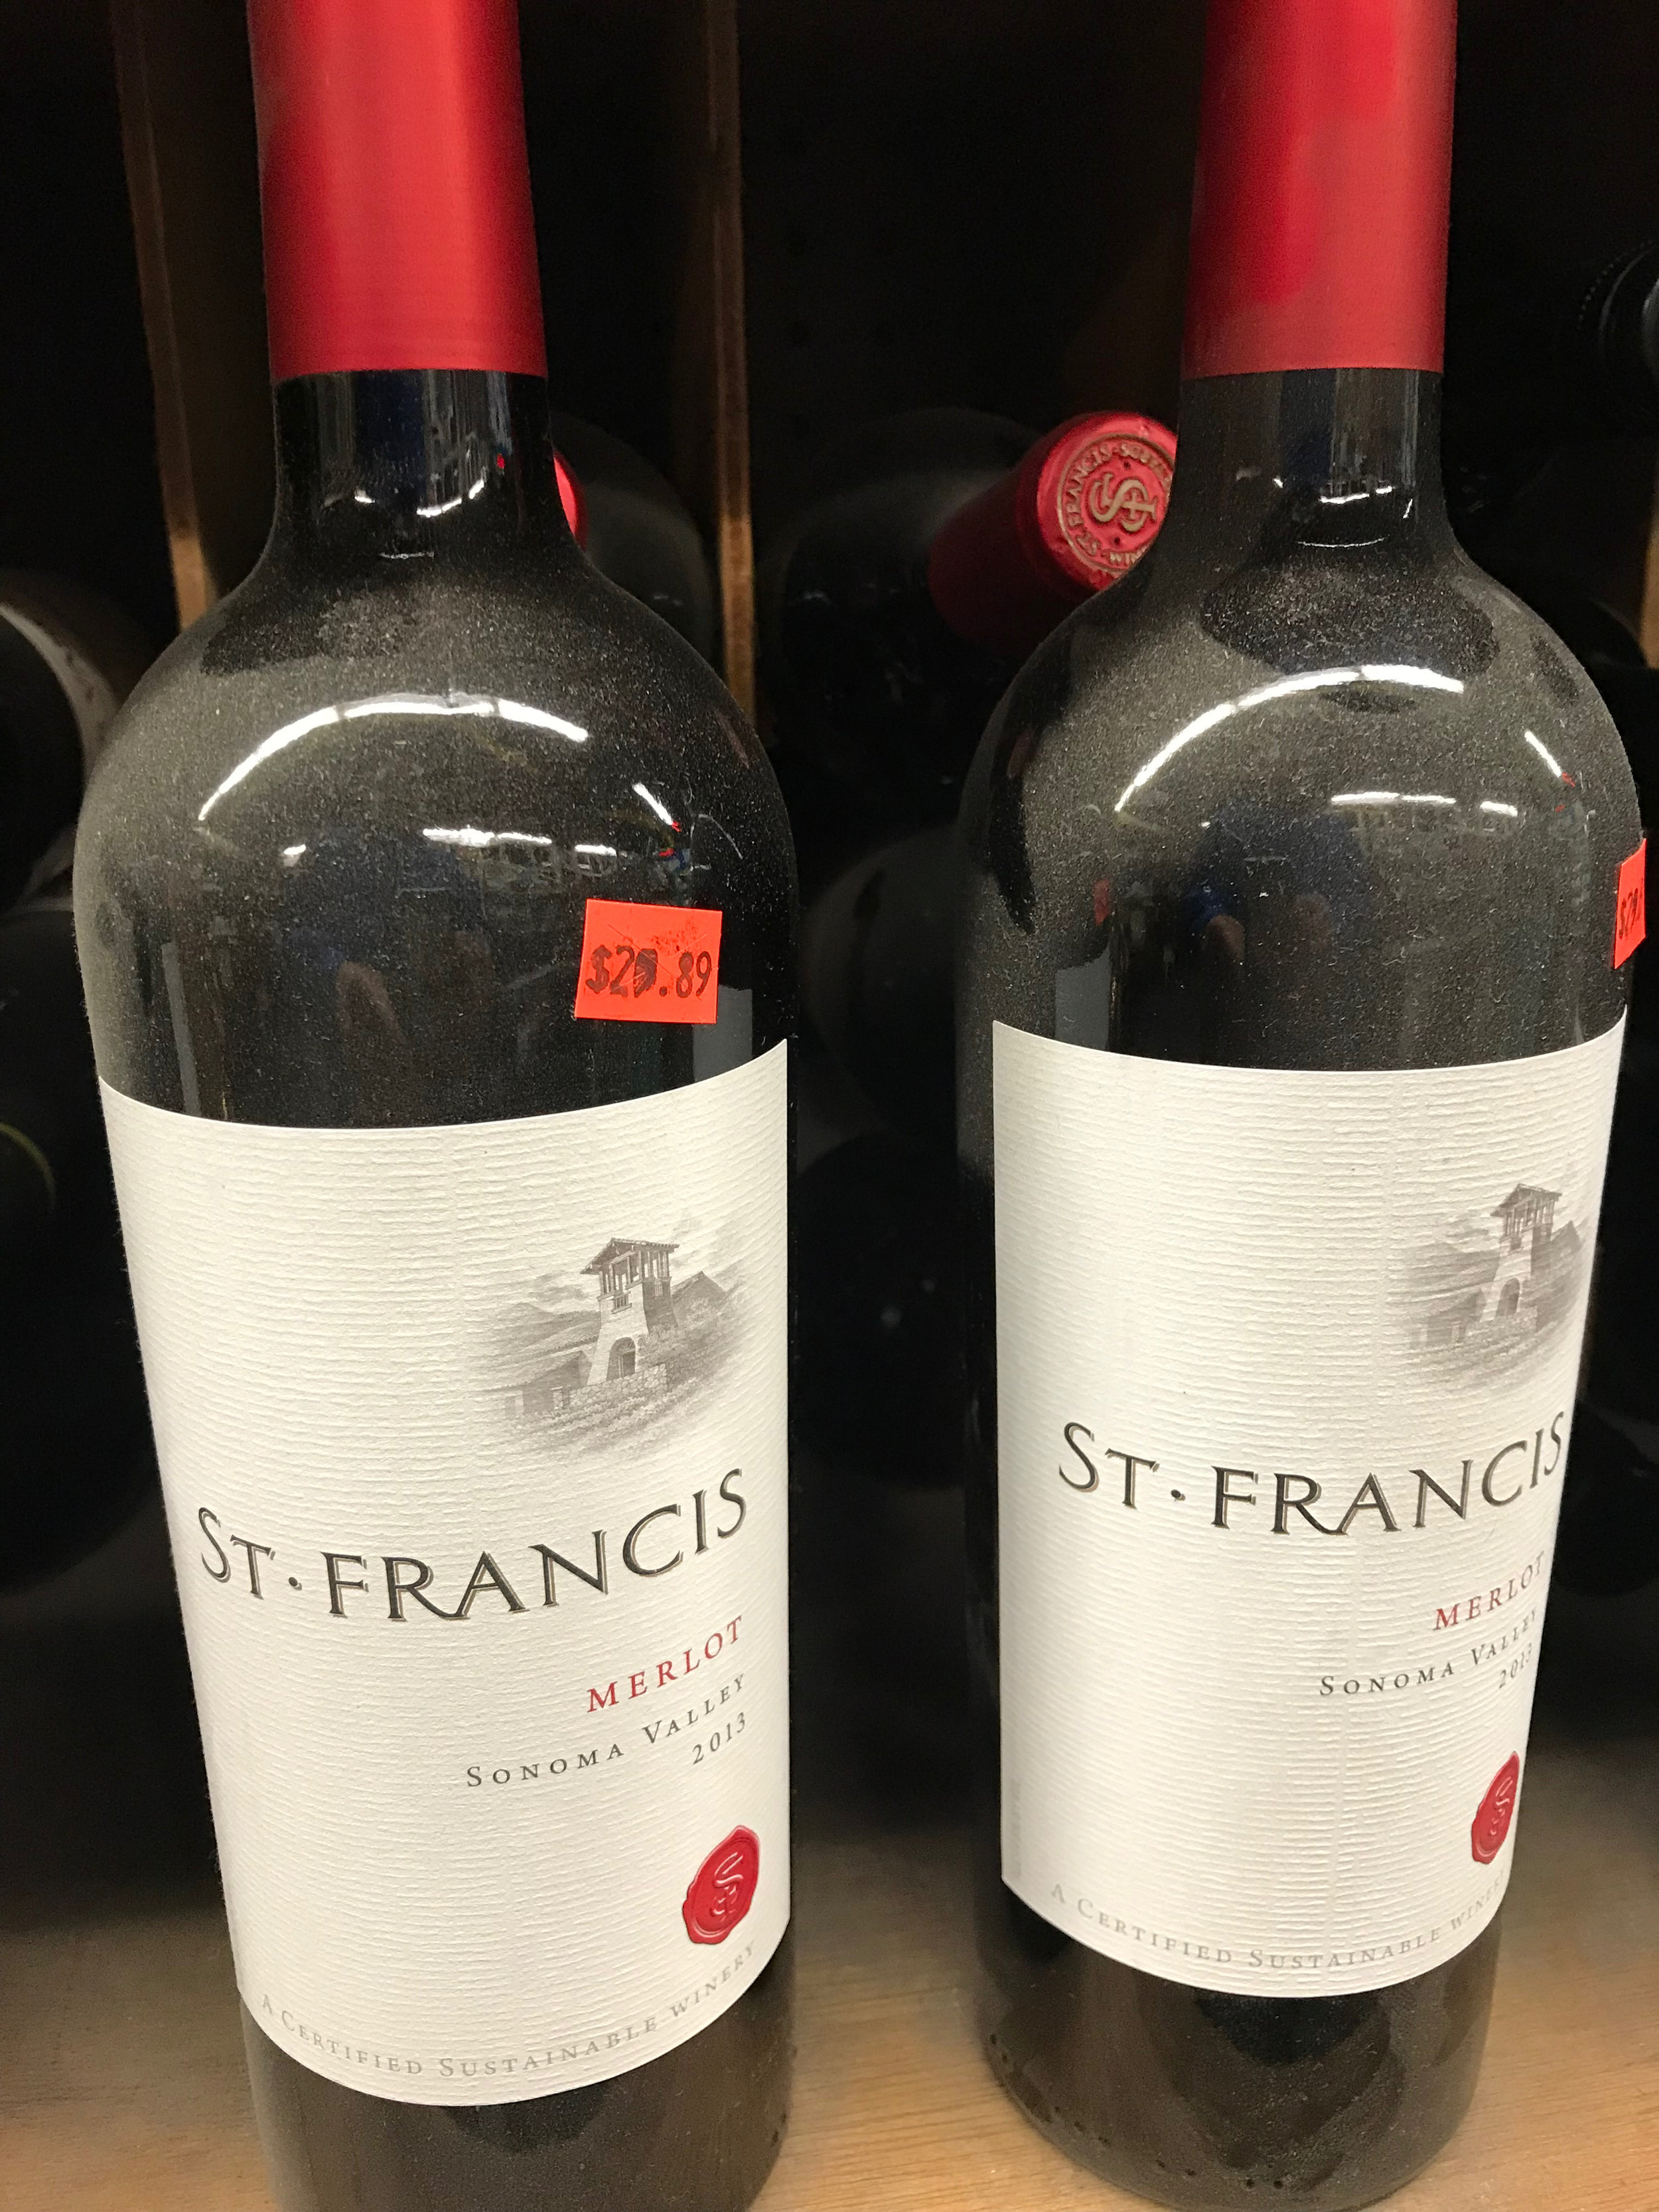 Buying a dusty bottle of red wine from a market with no air conditioning in Hawaii and taking it home to serve at room temperature would be misguided. For multiple reasons.